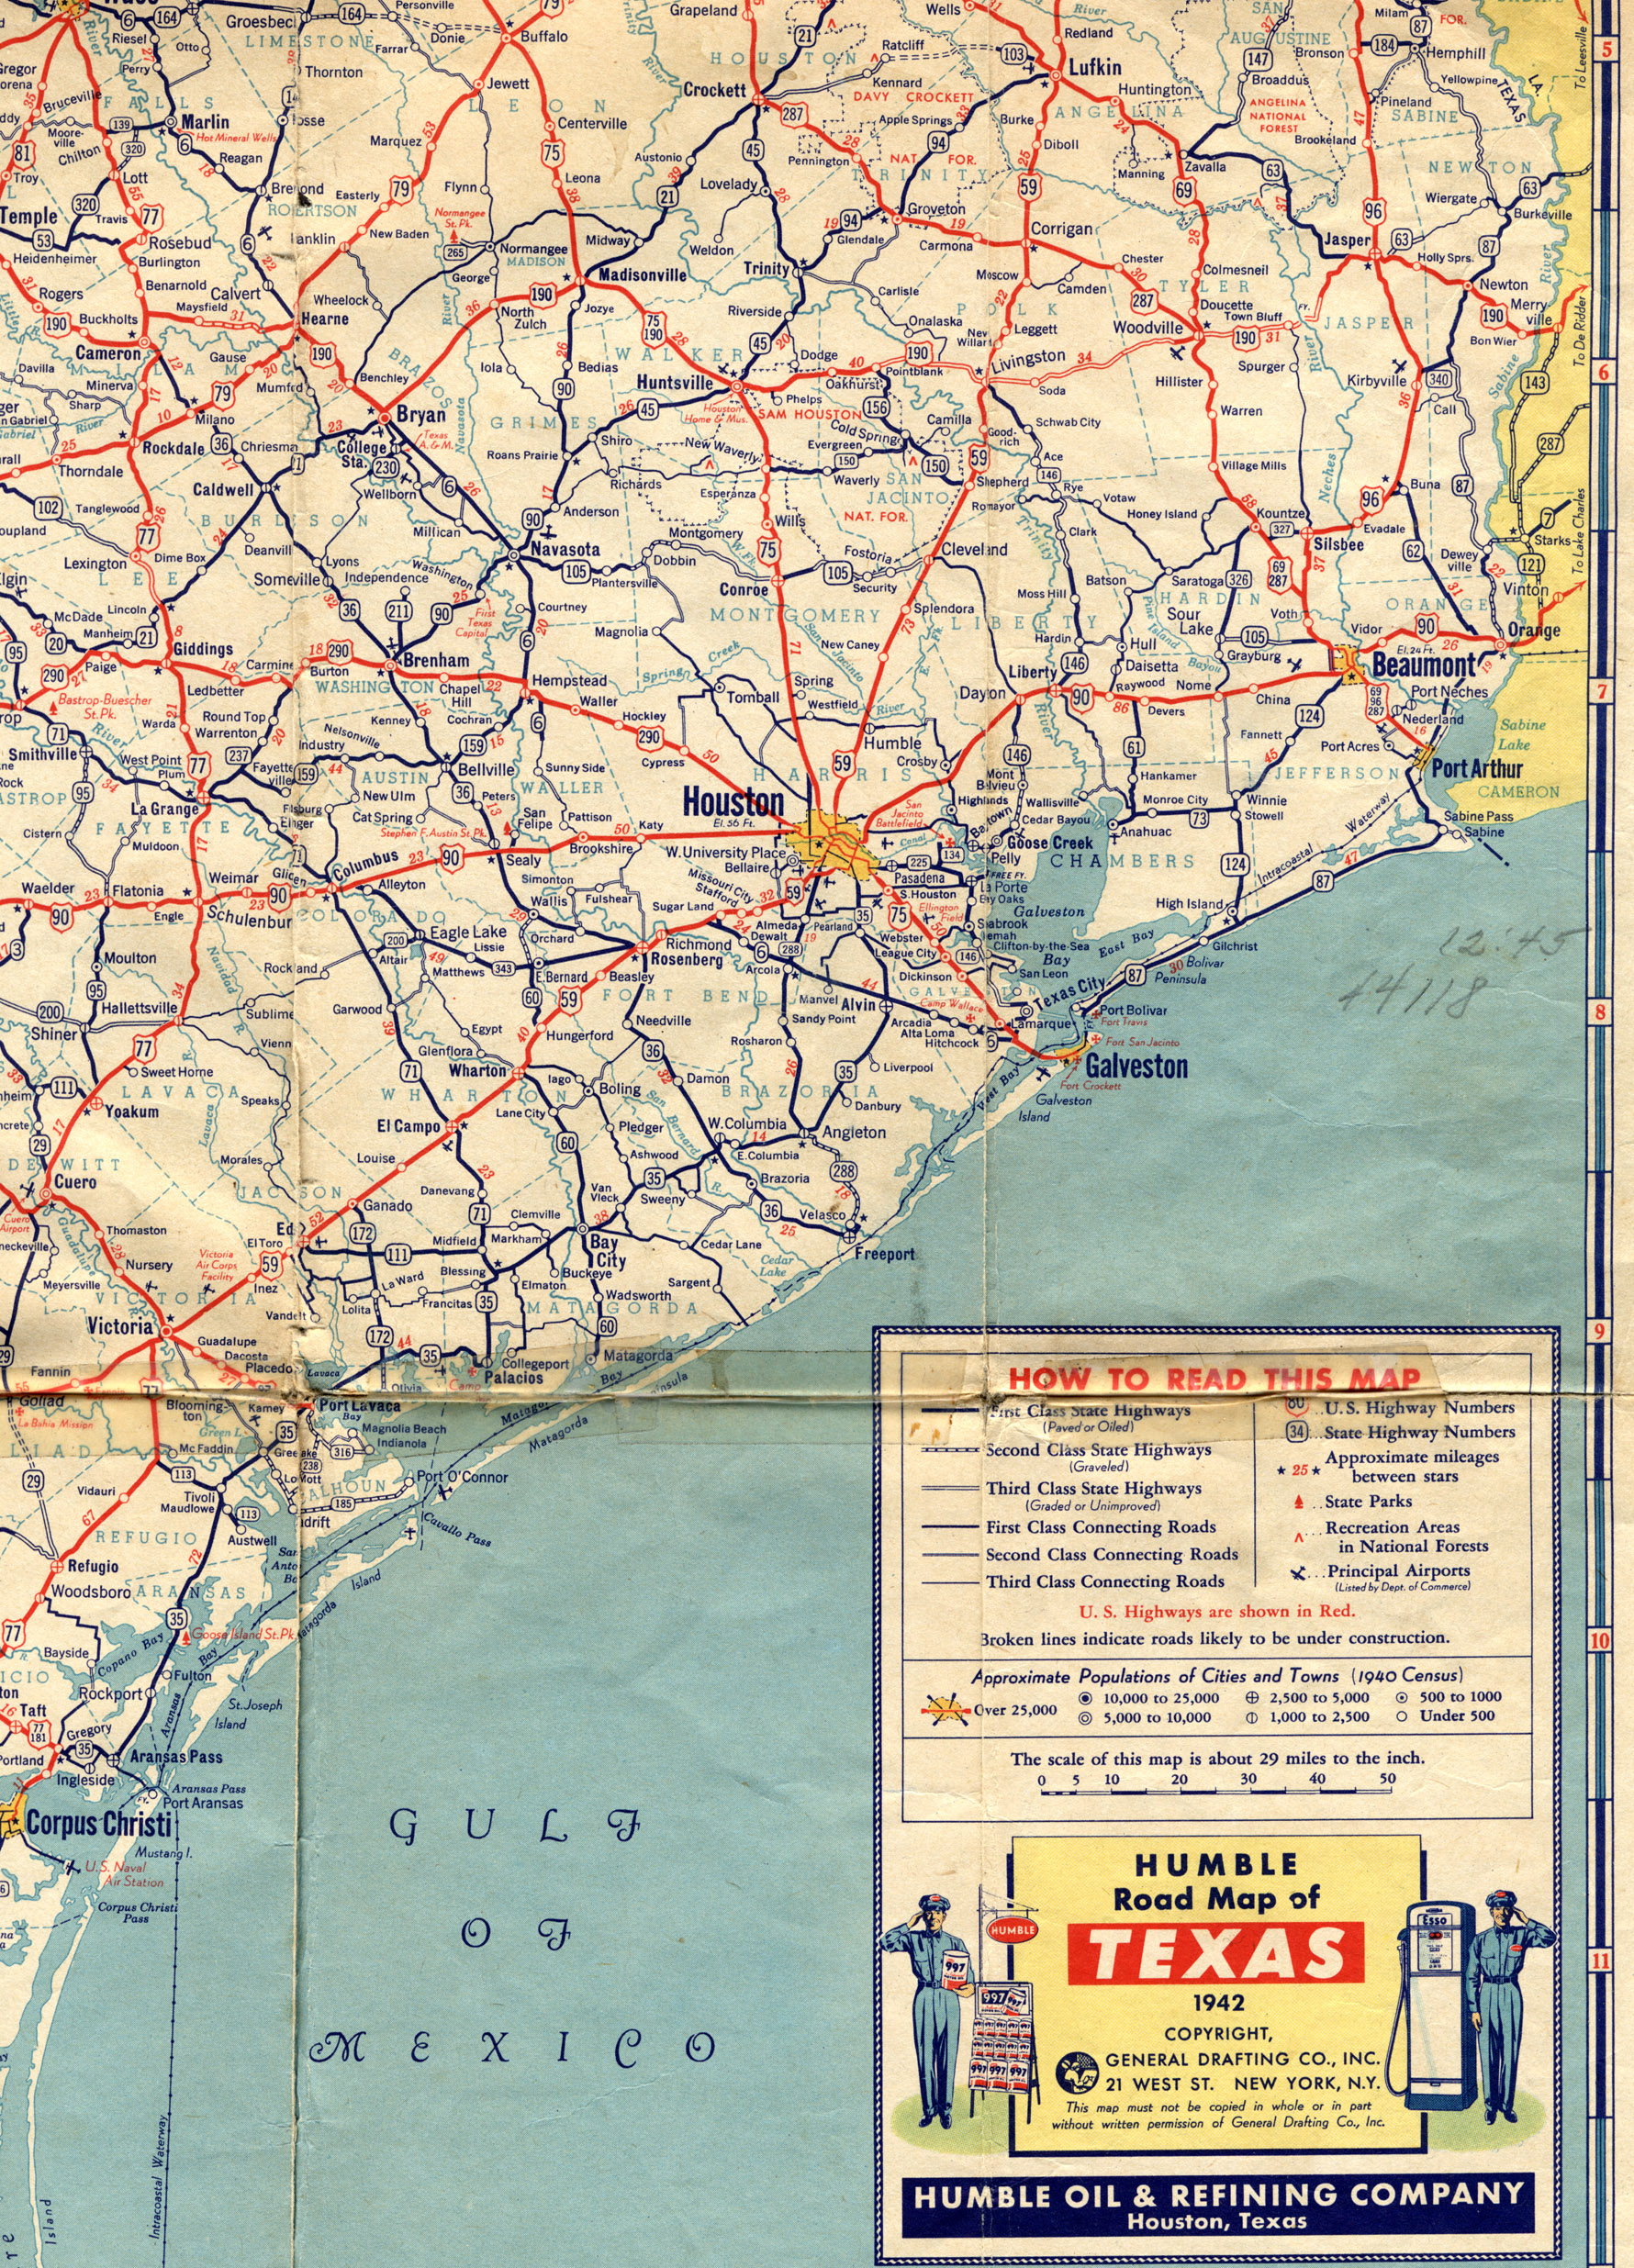 Southeast Highway Map Pictures To Pin On Pinterest  PinsDaddy